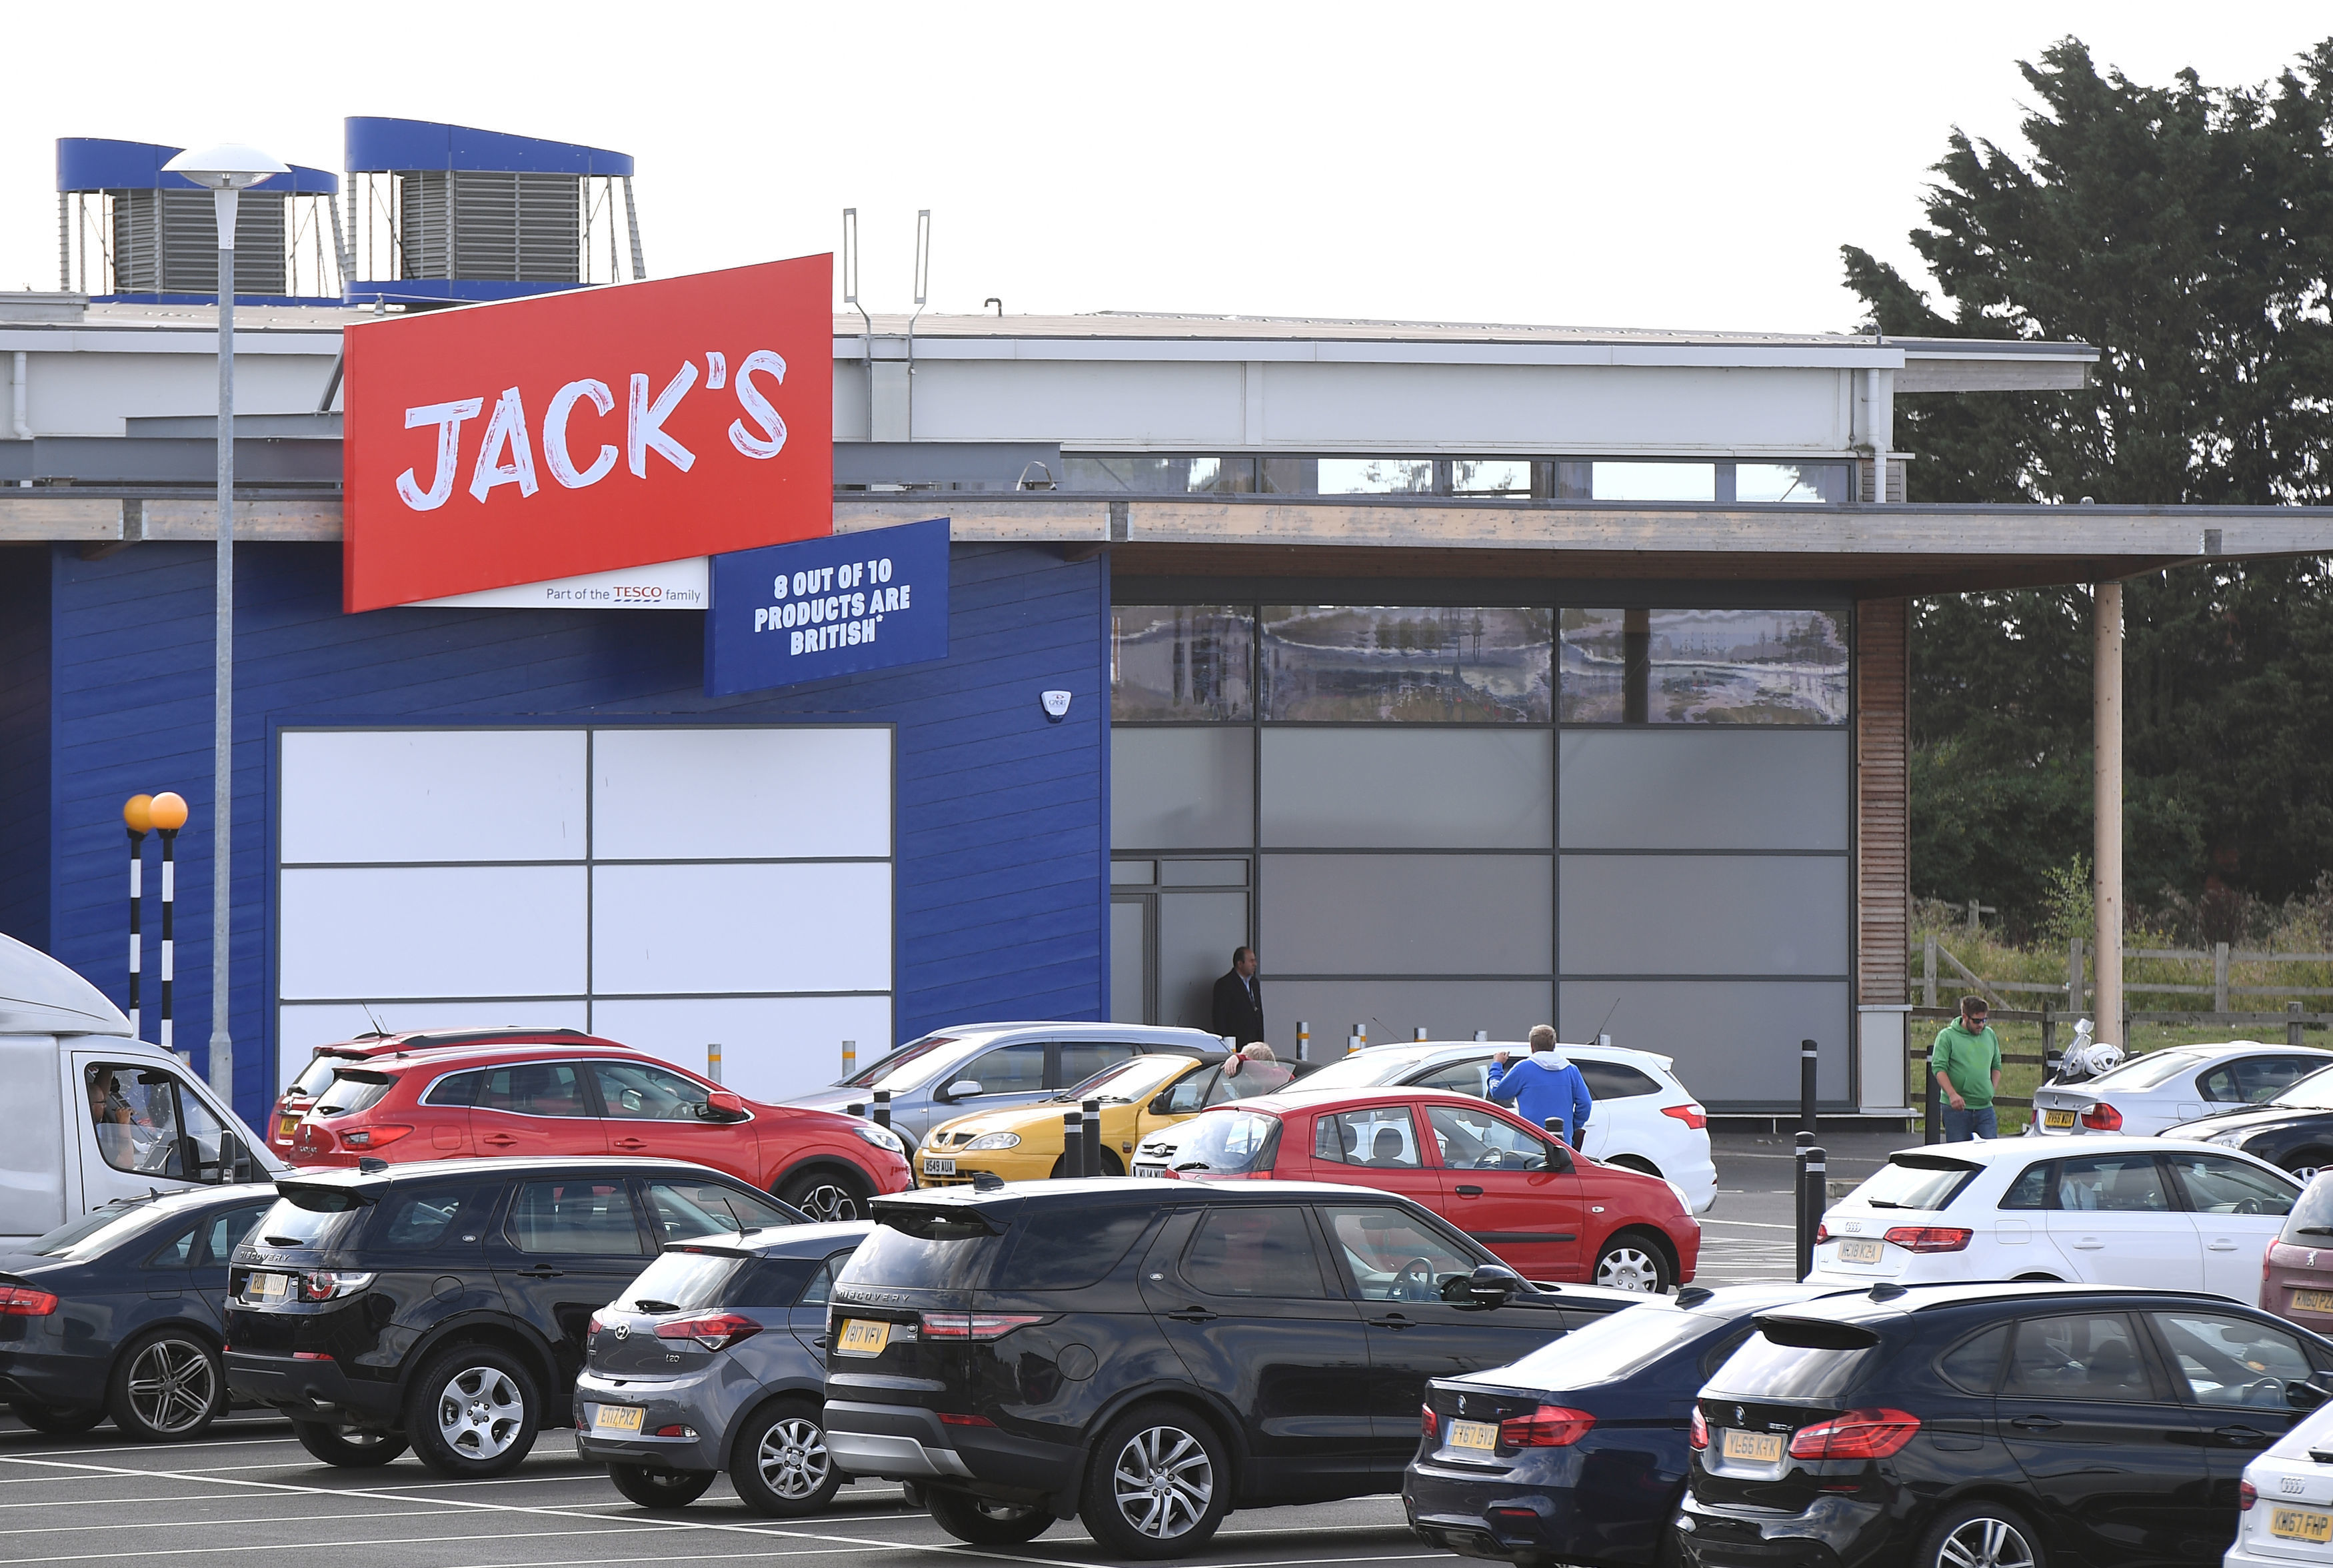 Tesco makes first splash with Jack's in Cambridgeshire and Lincolnshire